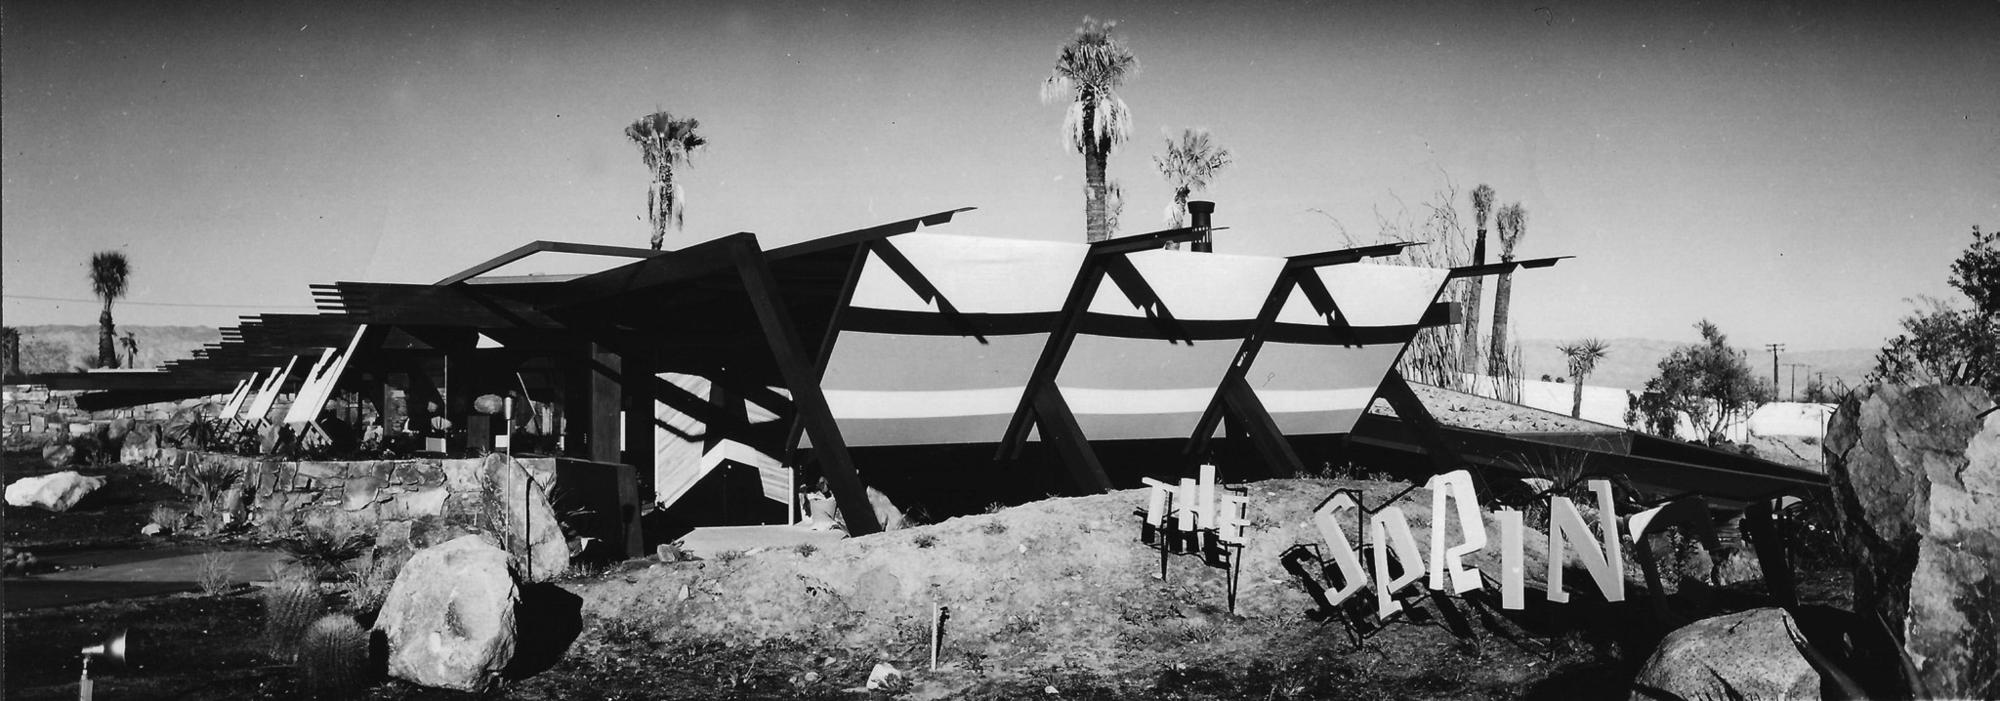 William F. Cody's Huddle's Springs Restaurant in Palm Springs, demolished in the 1990s.